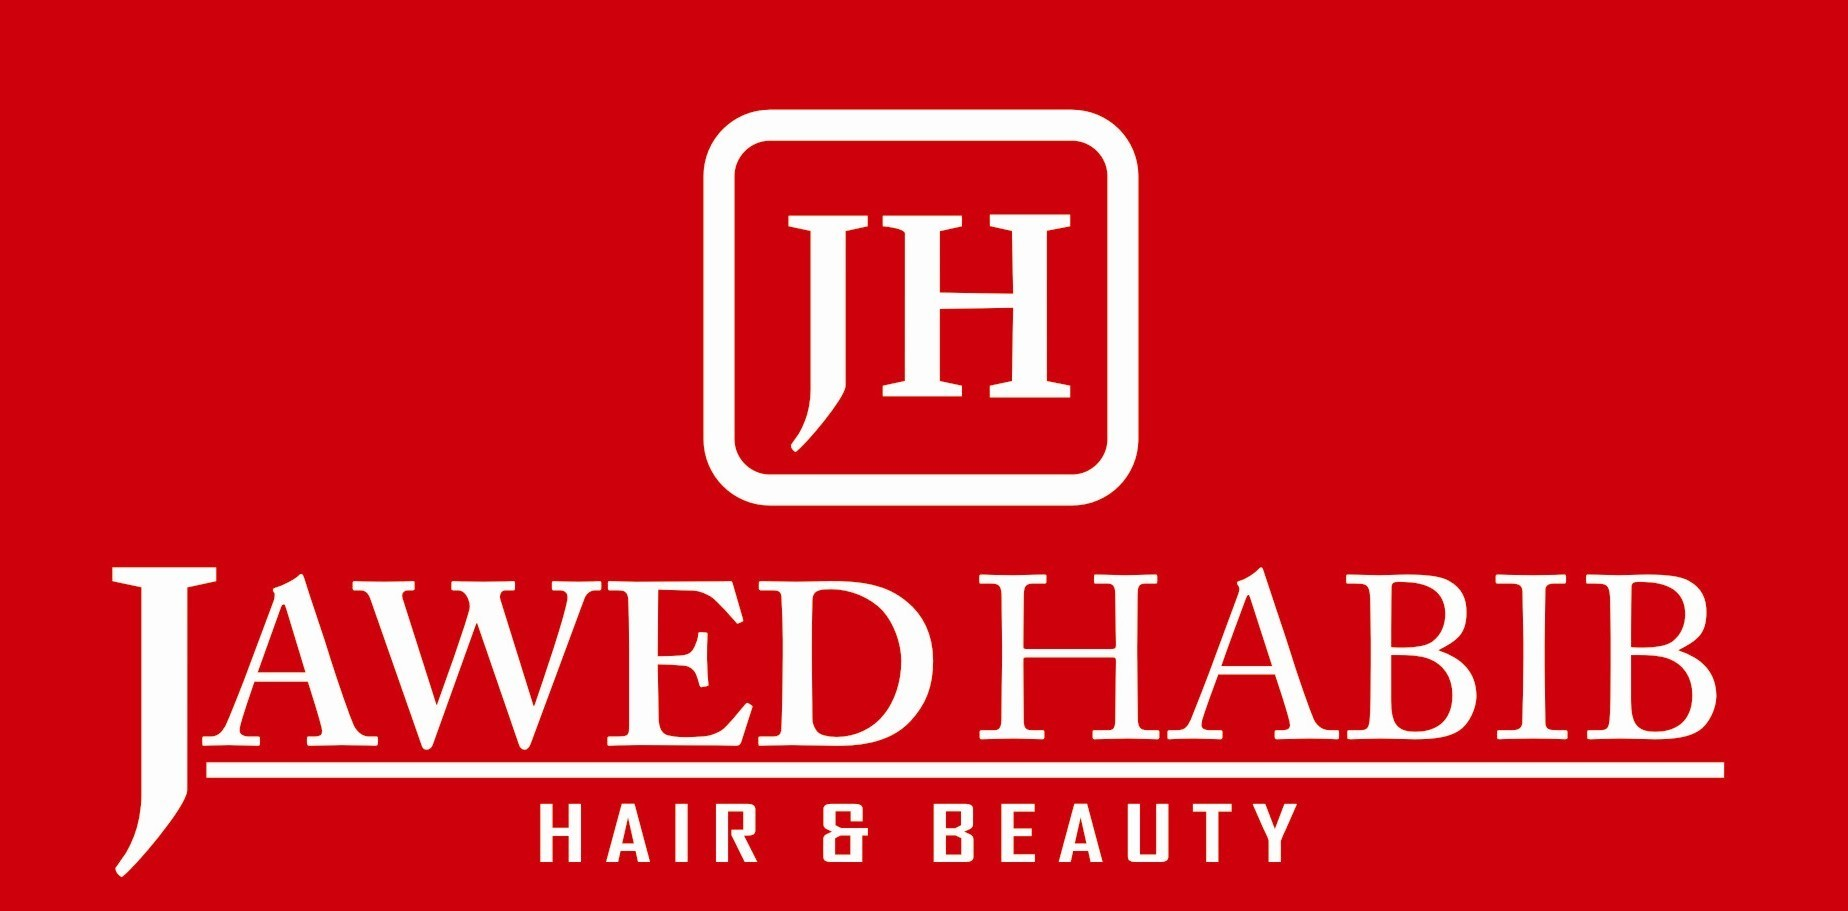 Jawed Habib Hair & Beauty Salons - Temple Road - Mysore Image